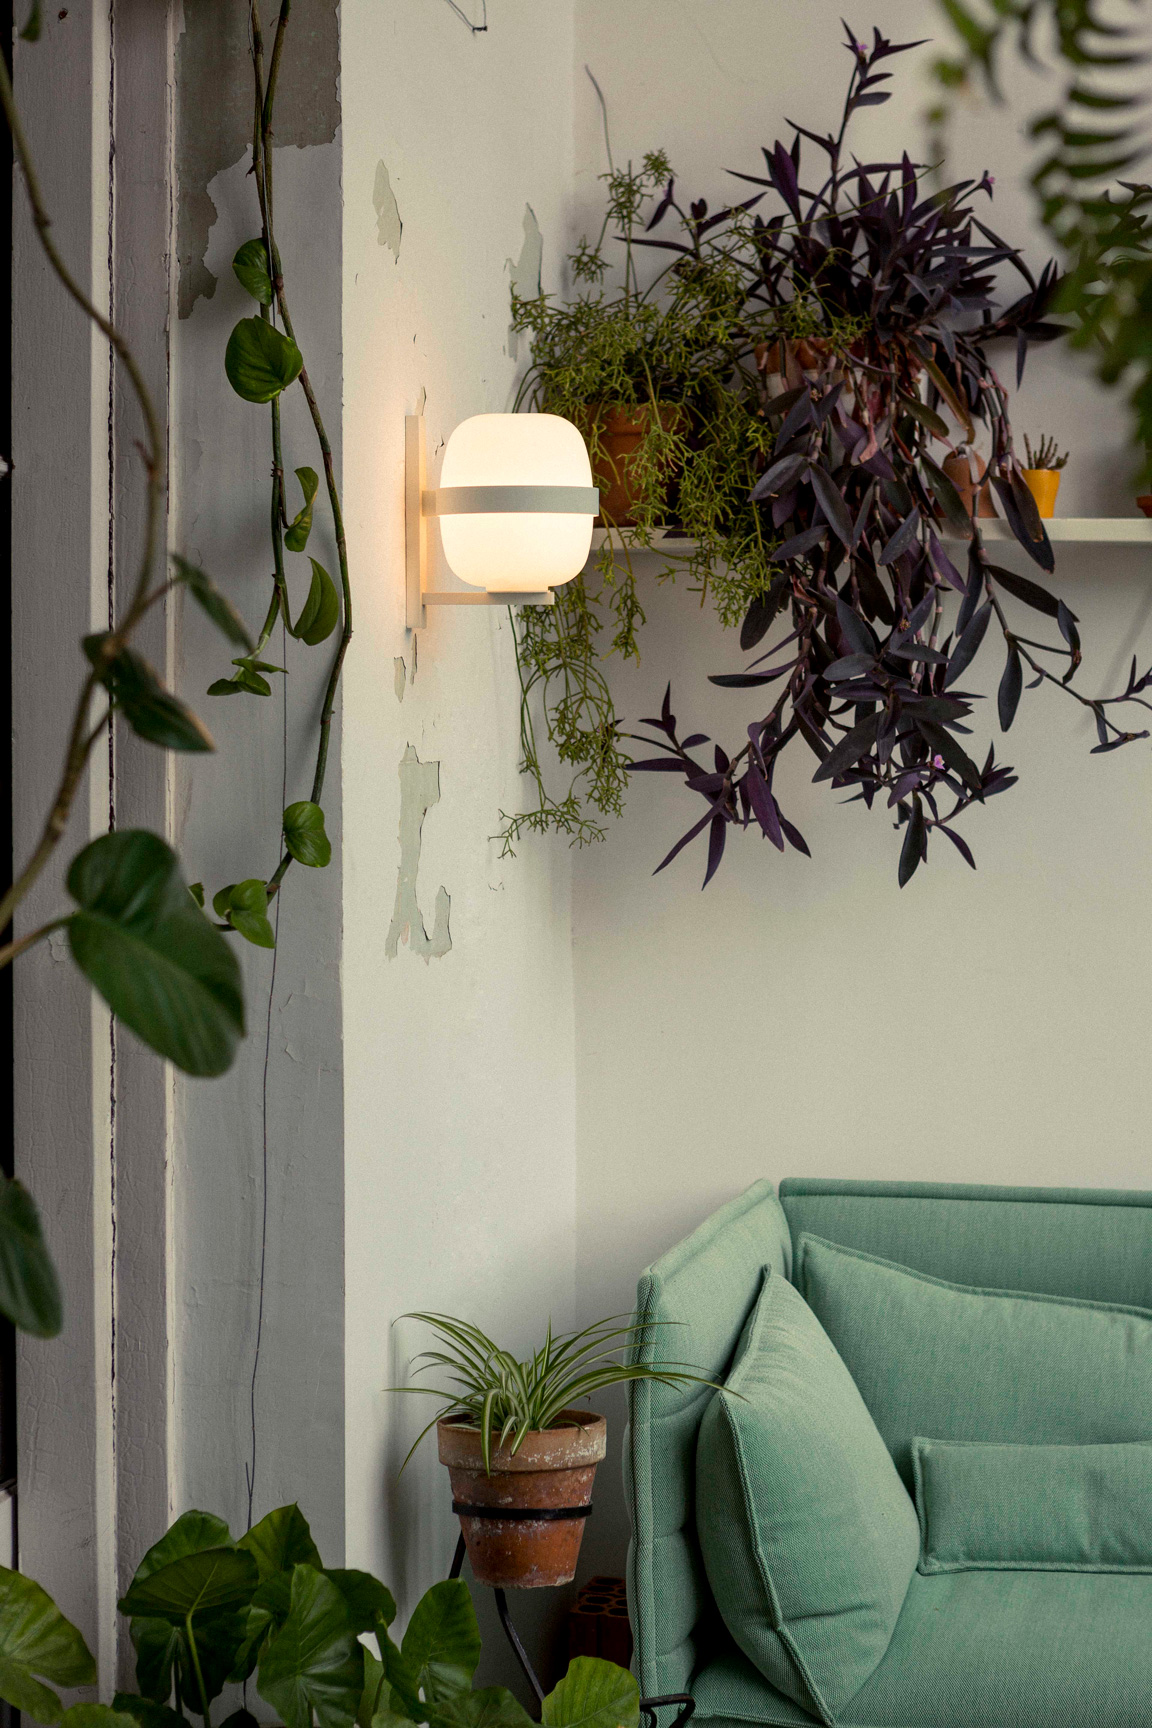 Wally Wall Lamp - <p>Wally is an iconic wall lamp that shares the same opal globe shape and formal elegance. The structure, available in matt white or dark bronze finishes, is fixed to the wall via a metal arm and ring that wrap around and support the glass shade.</p> <p>The Wally wall lamp adds a distinguishing touch to any setting. It provides a diffuse and soft illumination for both indoor and outdoor spaces.</p>  | Matter of Stuff